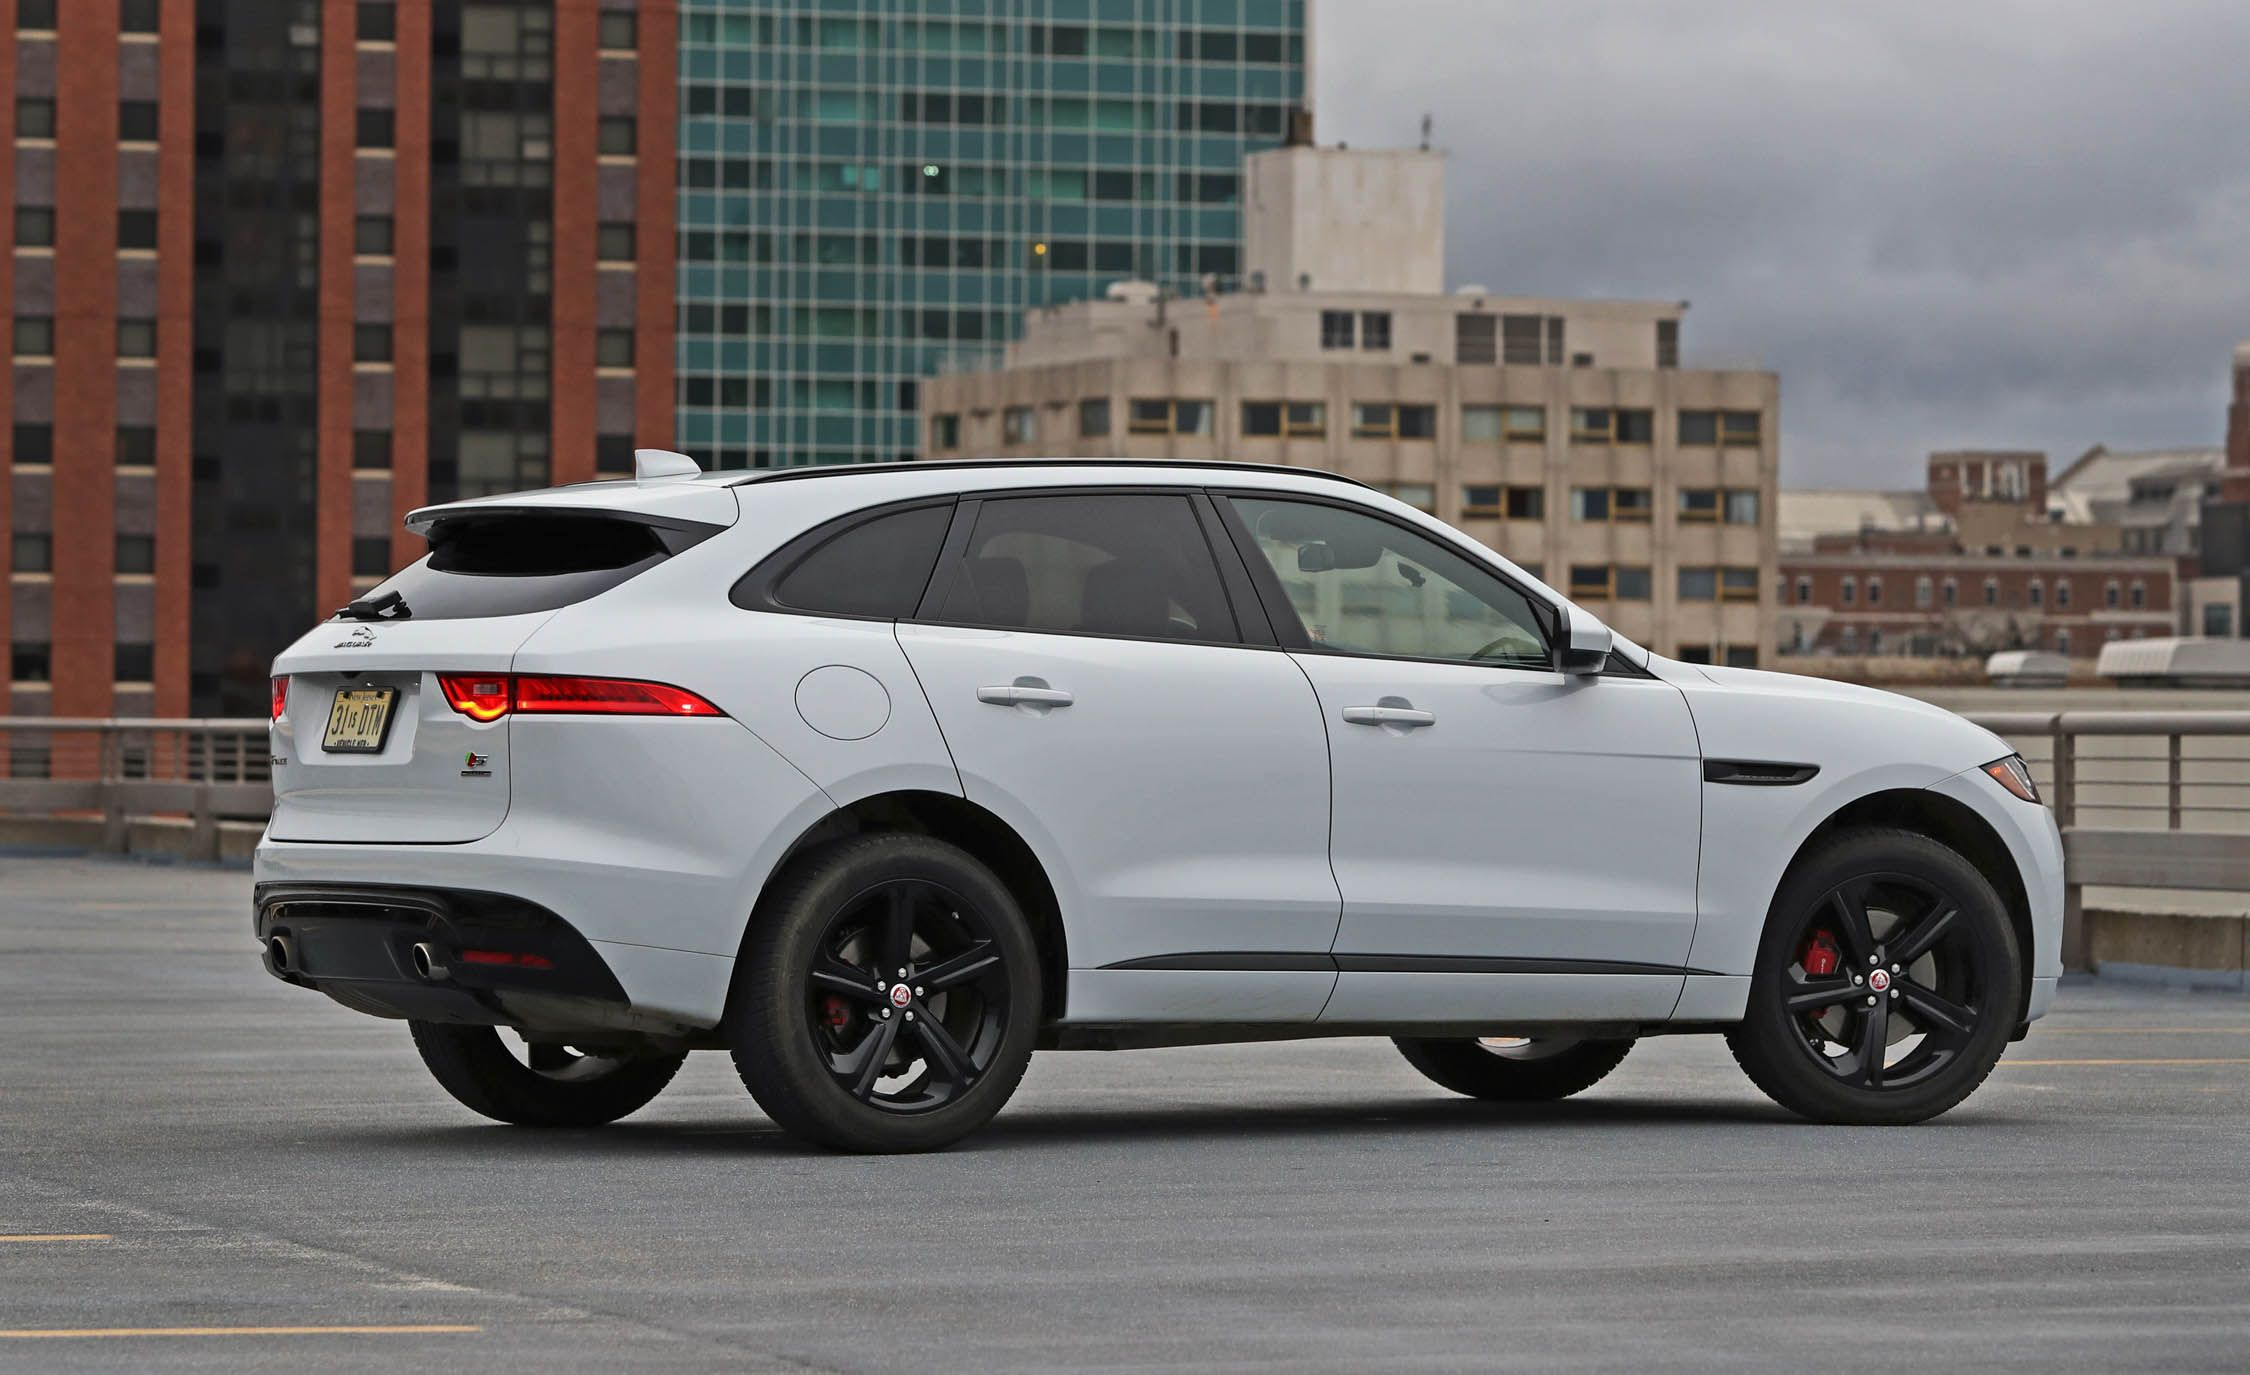 2018 Jaguar F-Pace | Interior and Passenger Space Review ...